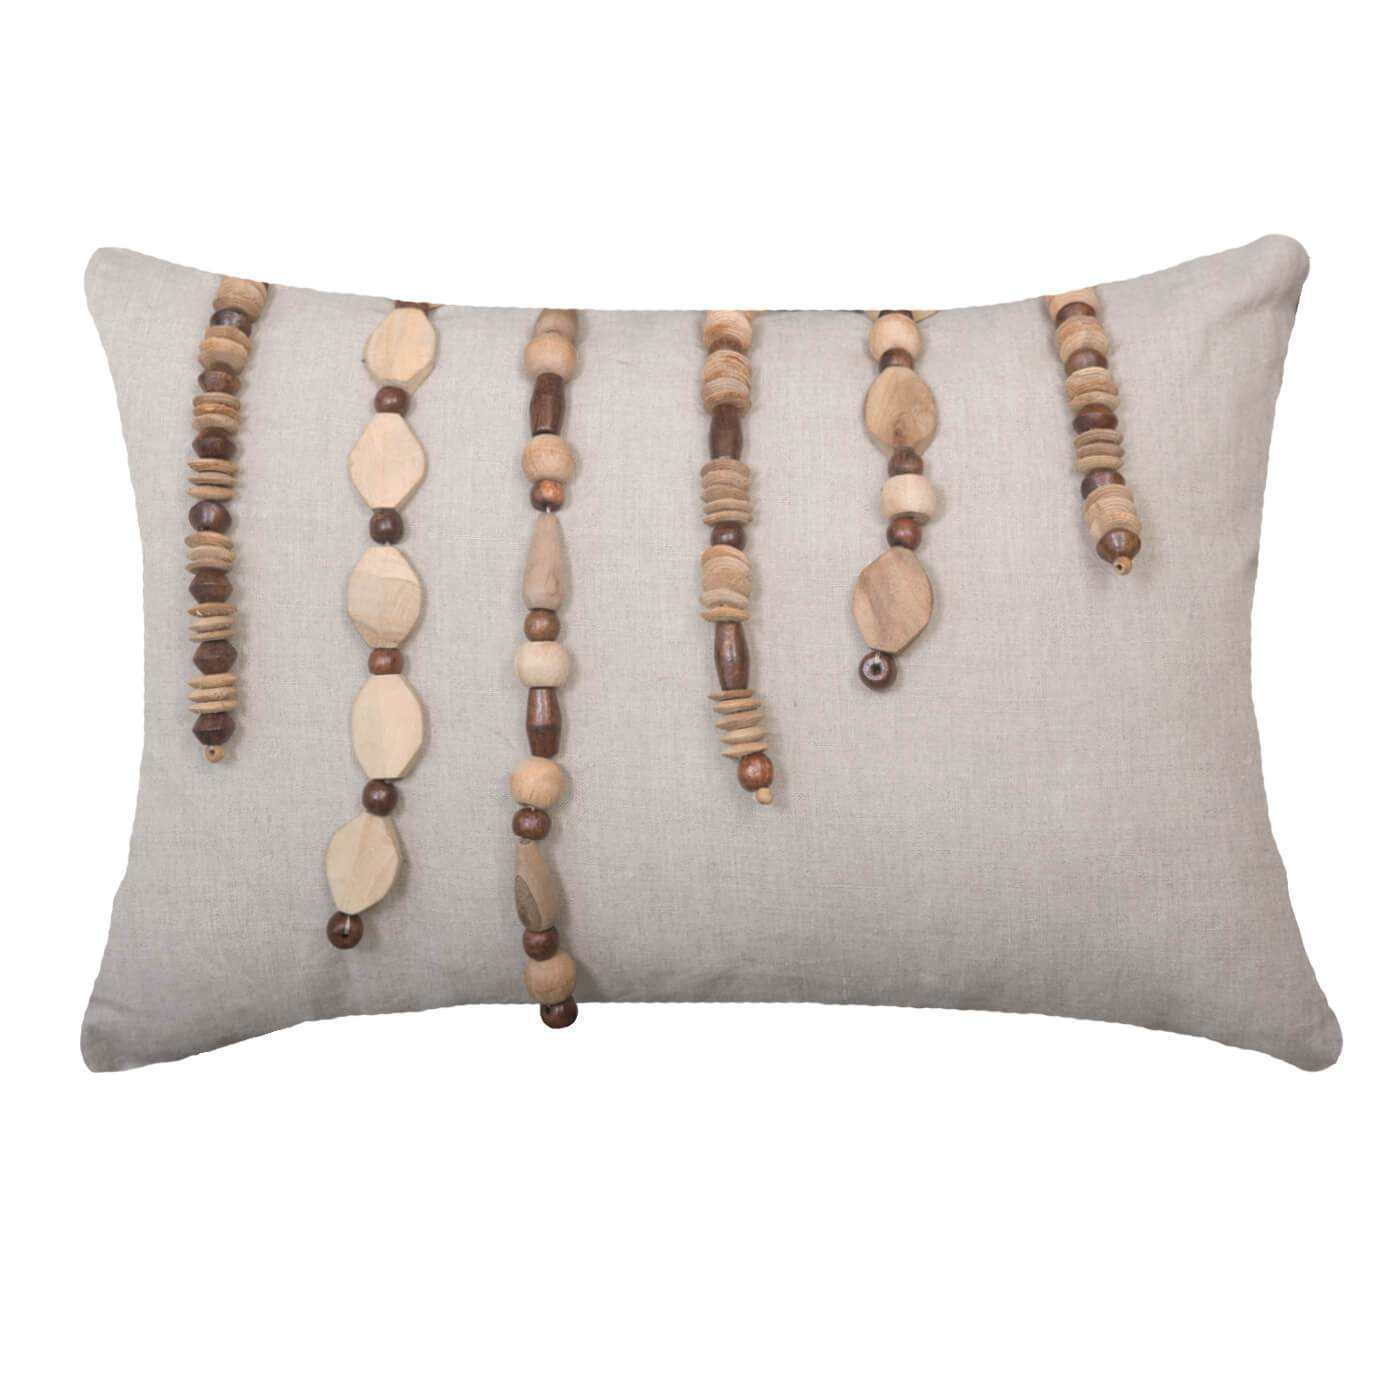 "Bandhini Homewear Design Lumber Cushion Natural / Surf / 14"" x 21"" Wood Necklace Lumber Cushion 35 x 53 cm"